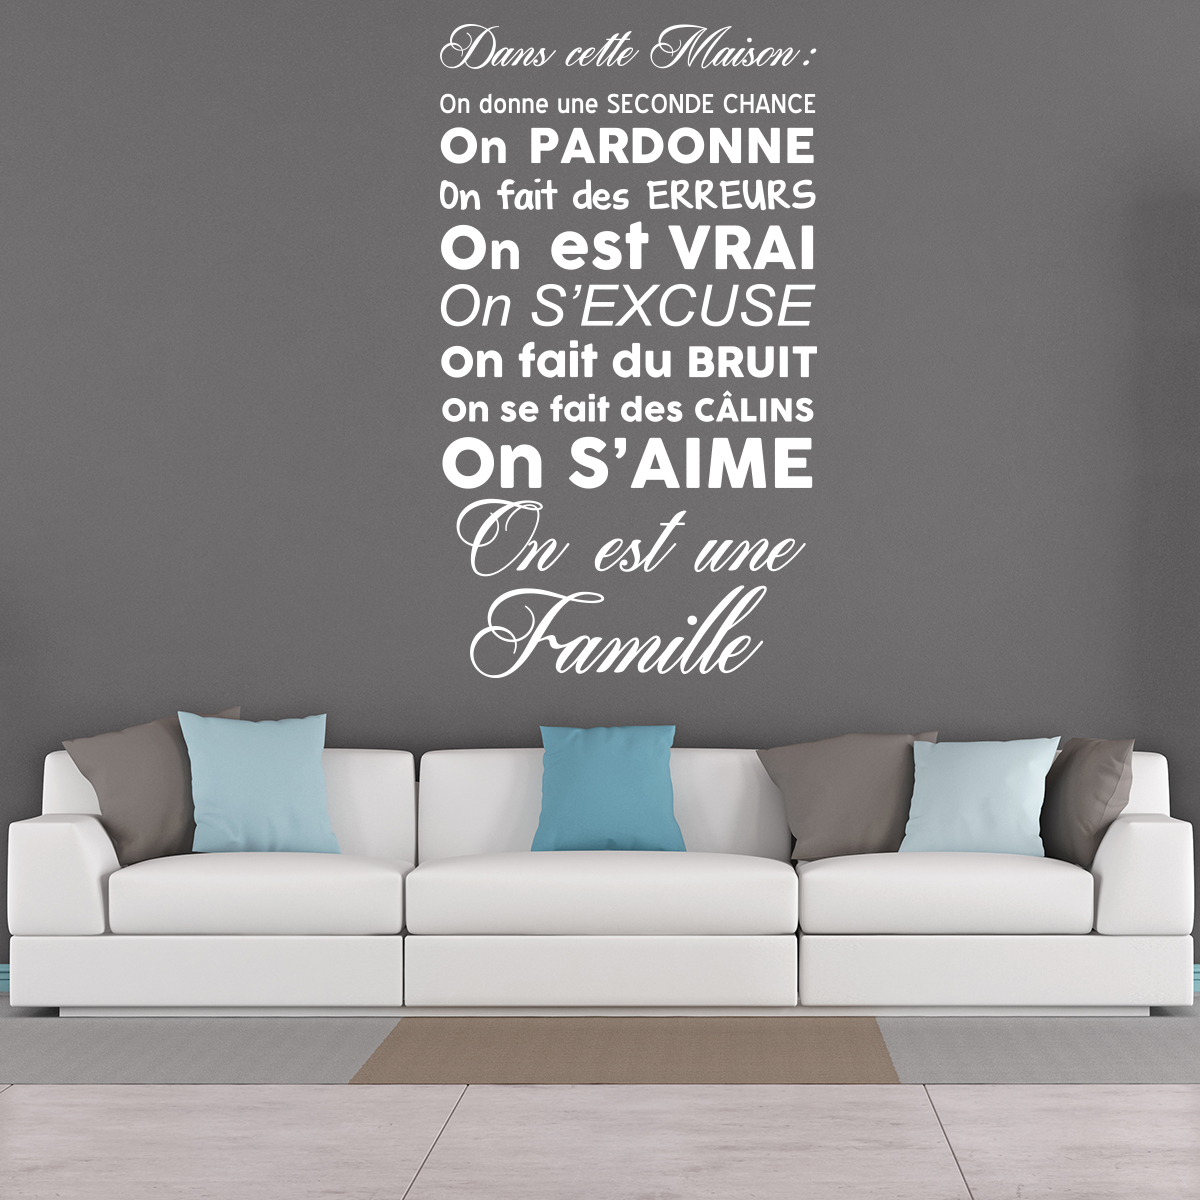 Sticker citation dans cette maison on est une famille stickers citations fran ais ambiance - Stickers muraux citations chambre ...